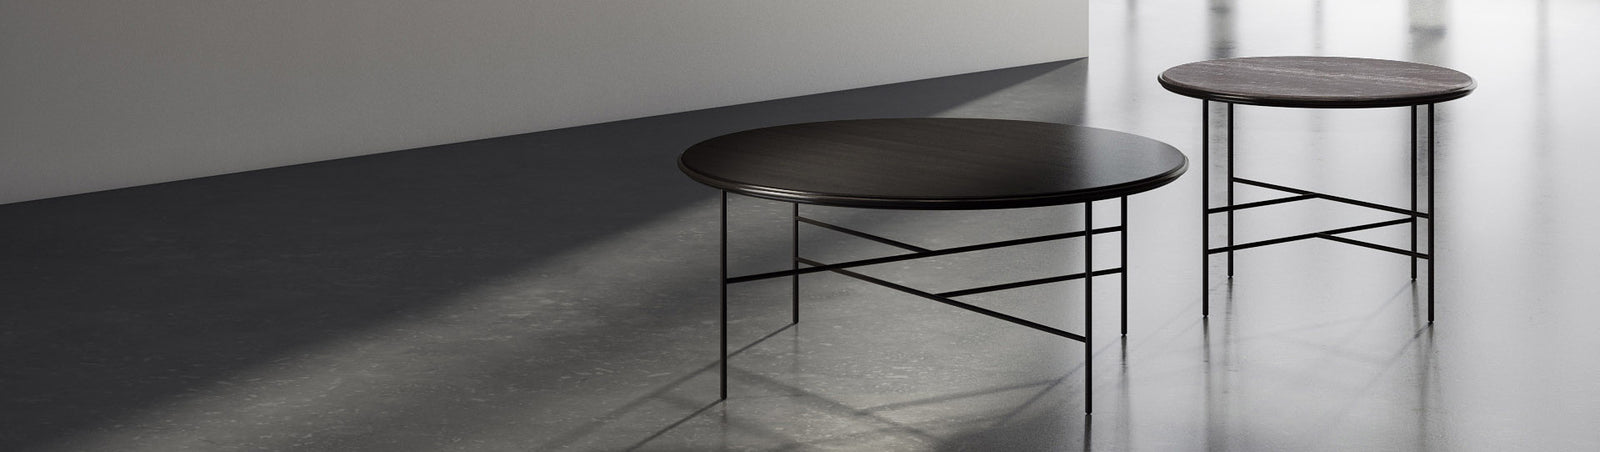 Tables | Beautiful side tables